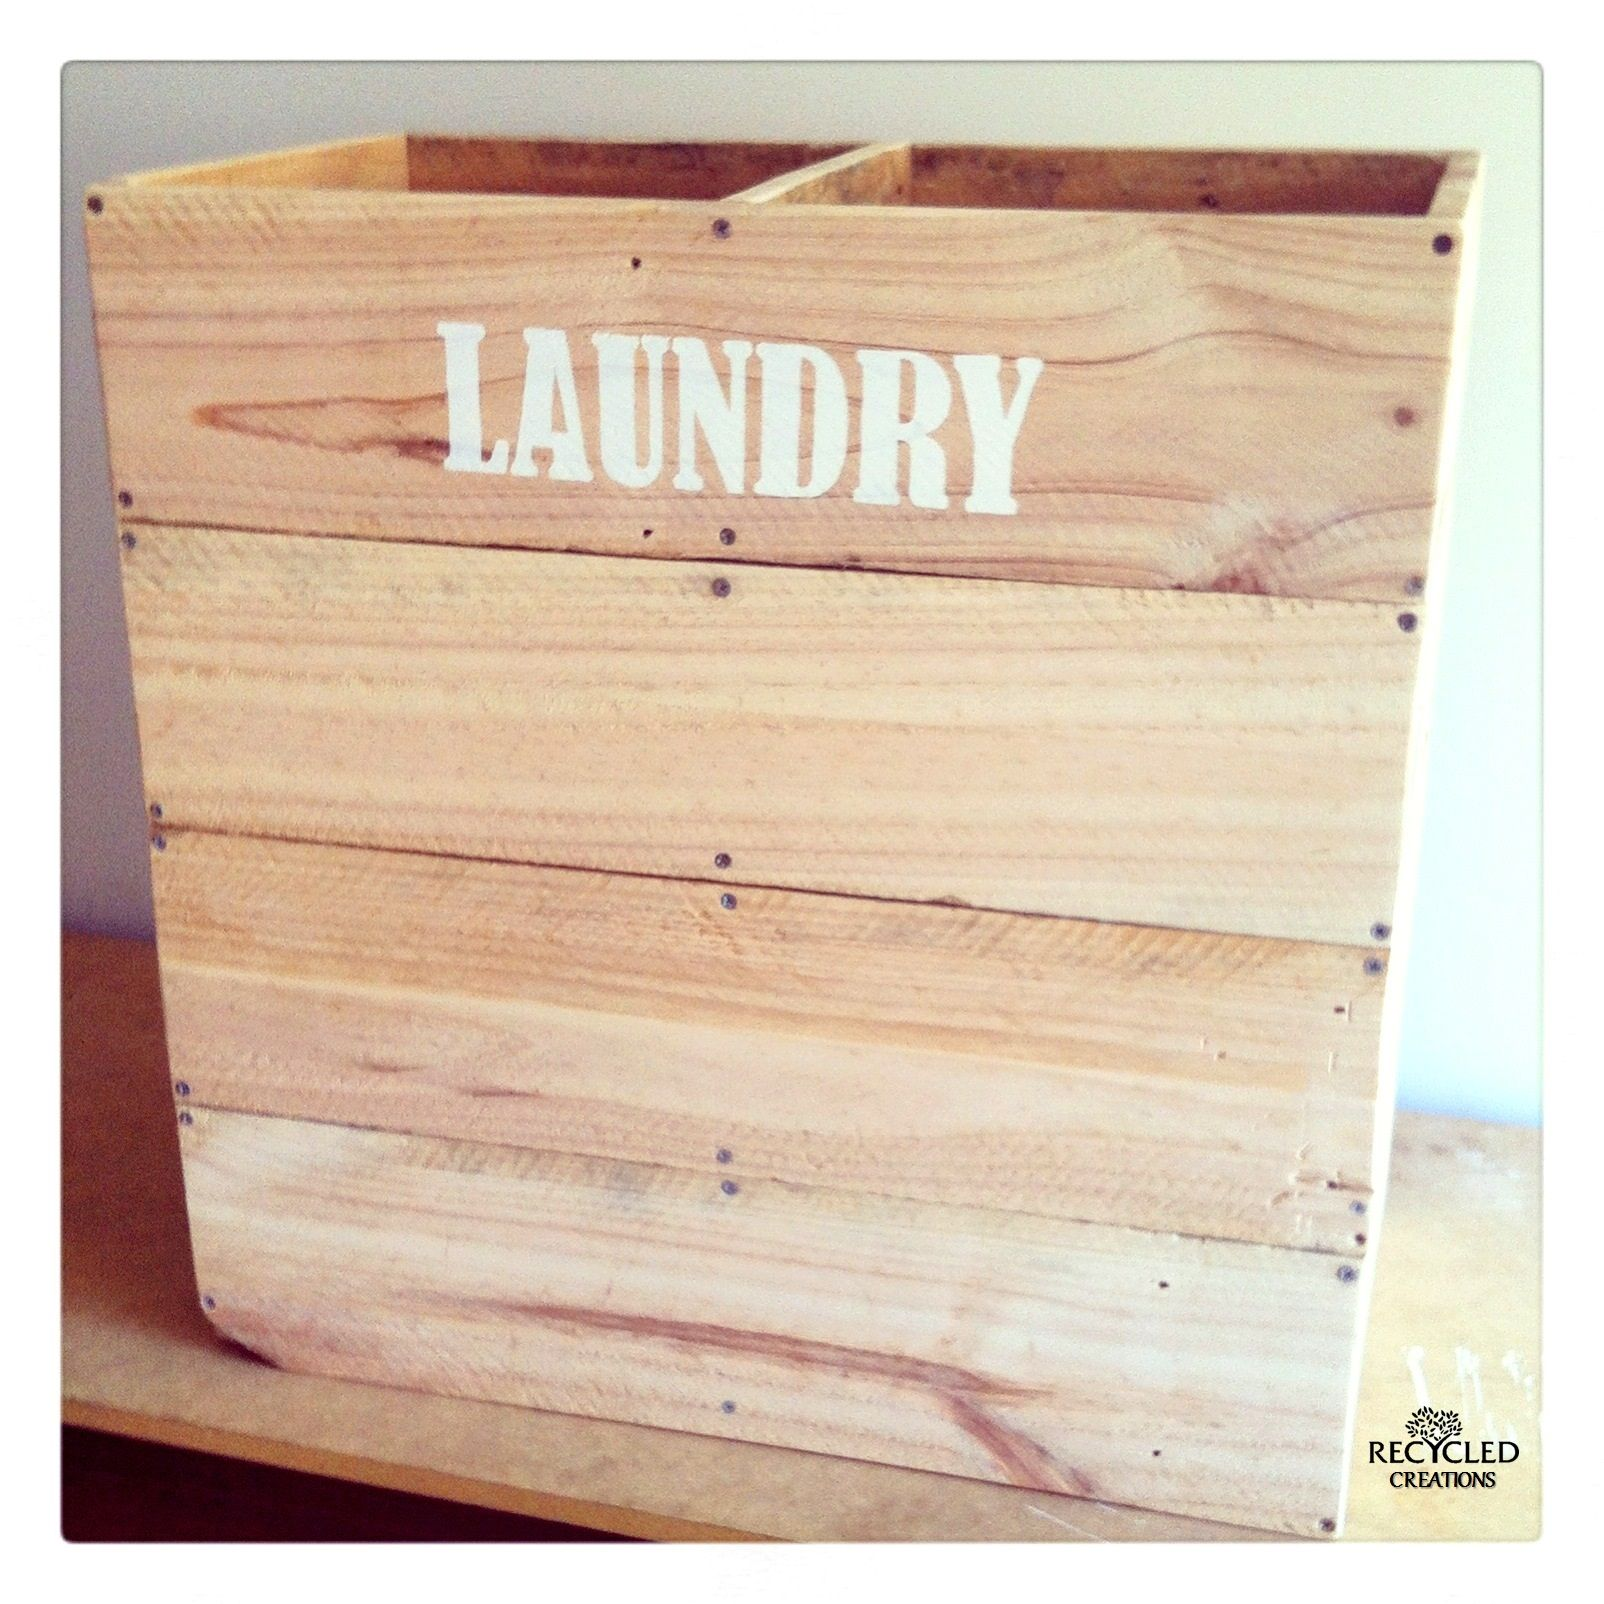 Pin by My Info on pallets in 2019   Laundry in bathroom ...